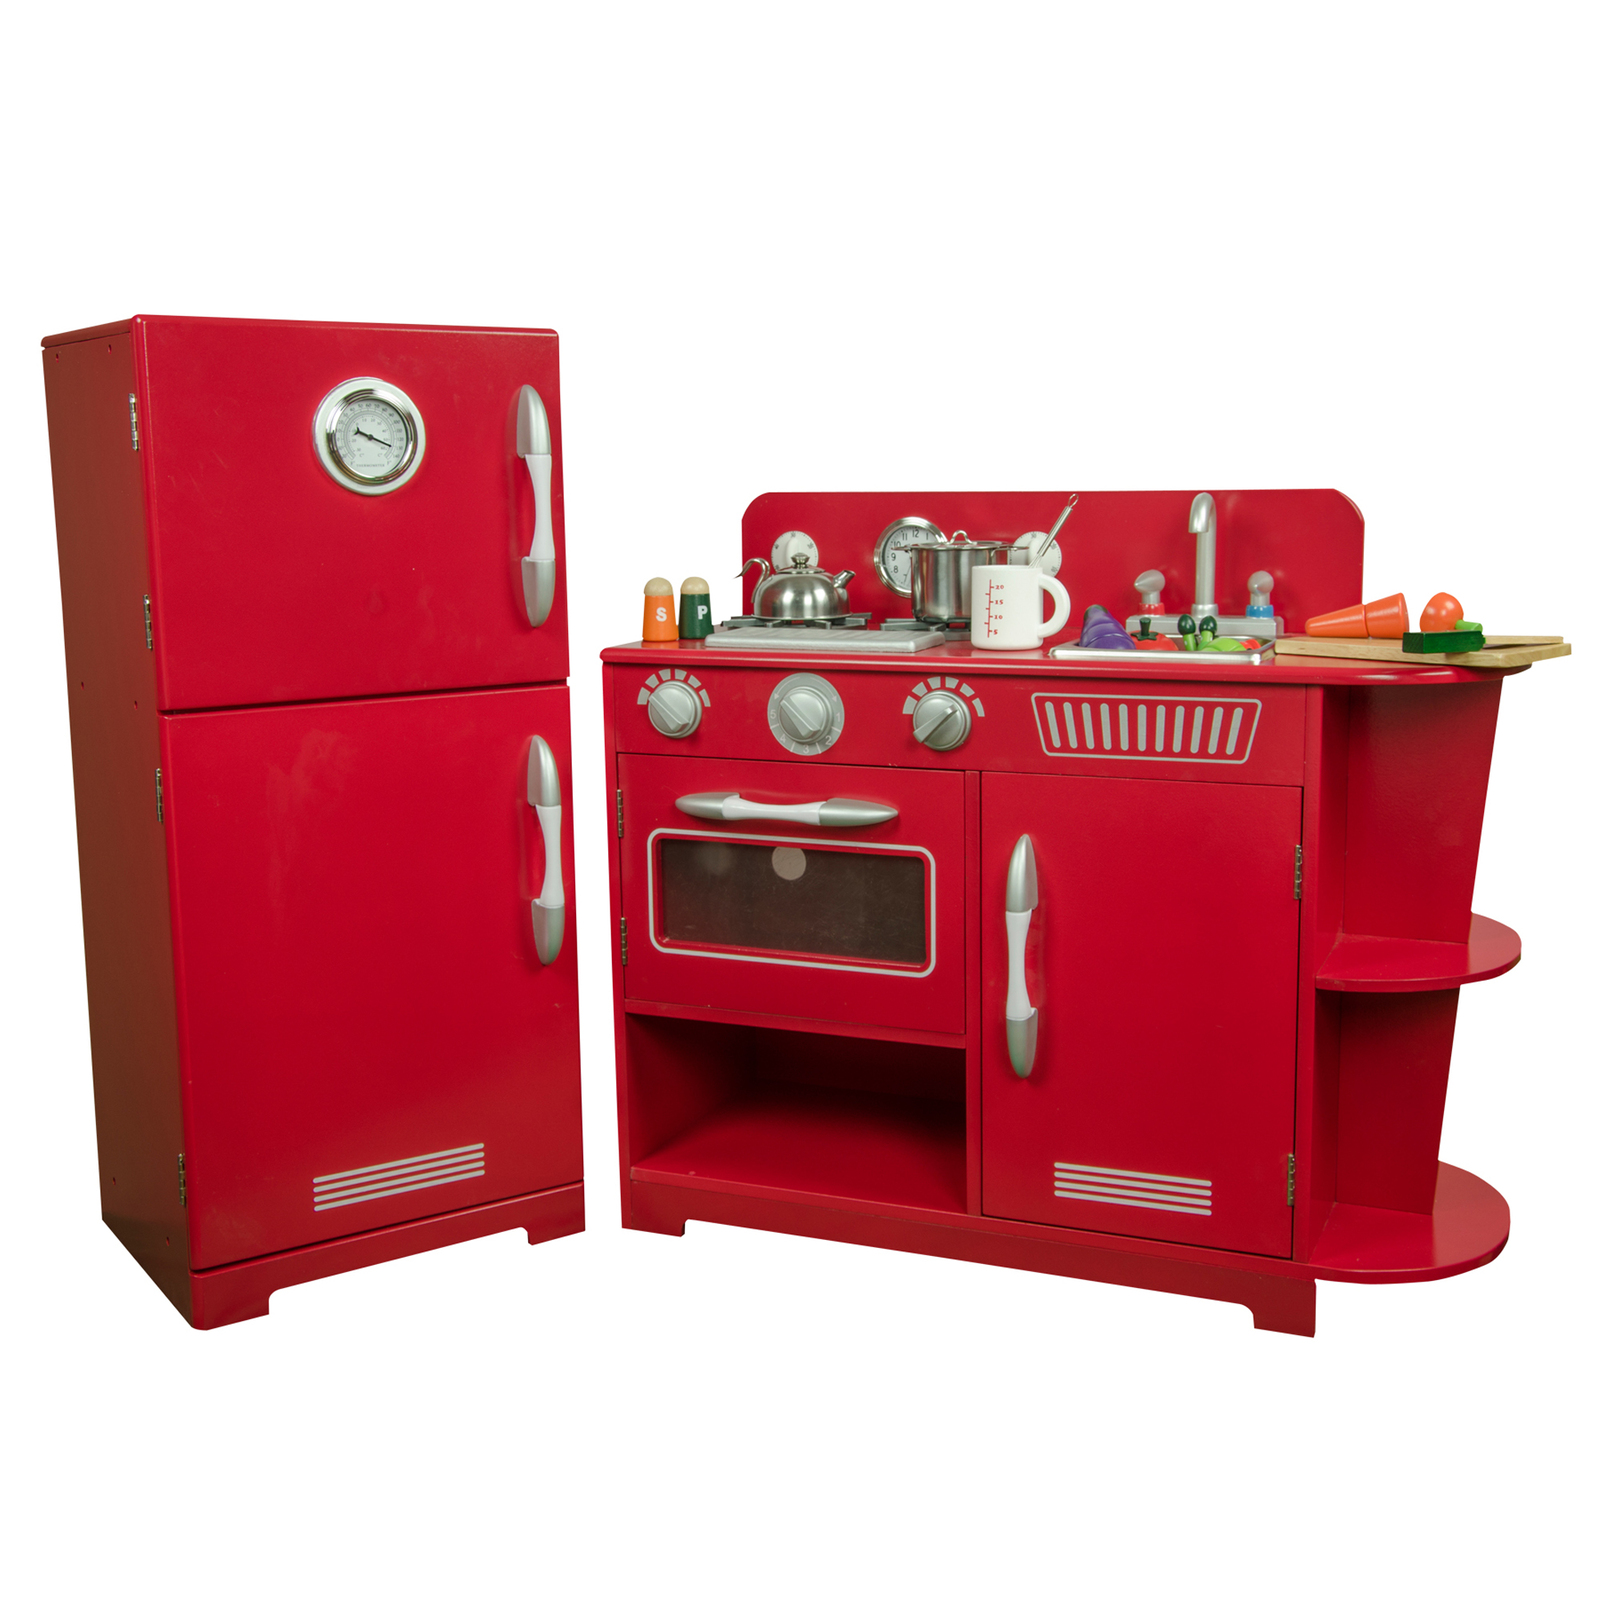 Teamson Kids - Red Play Kitchen (2 Piece)